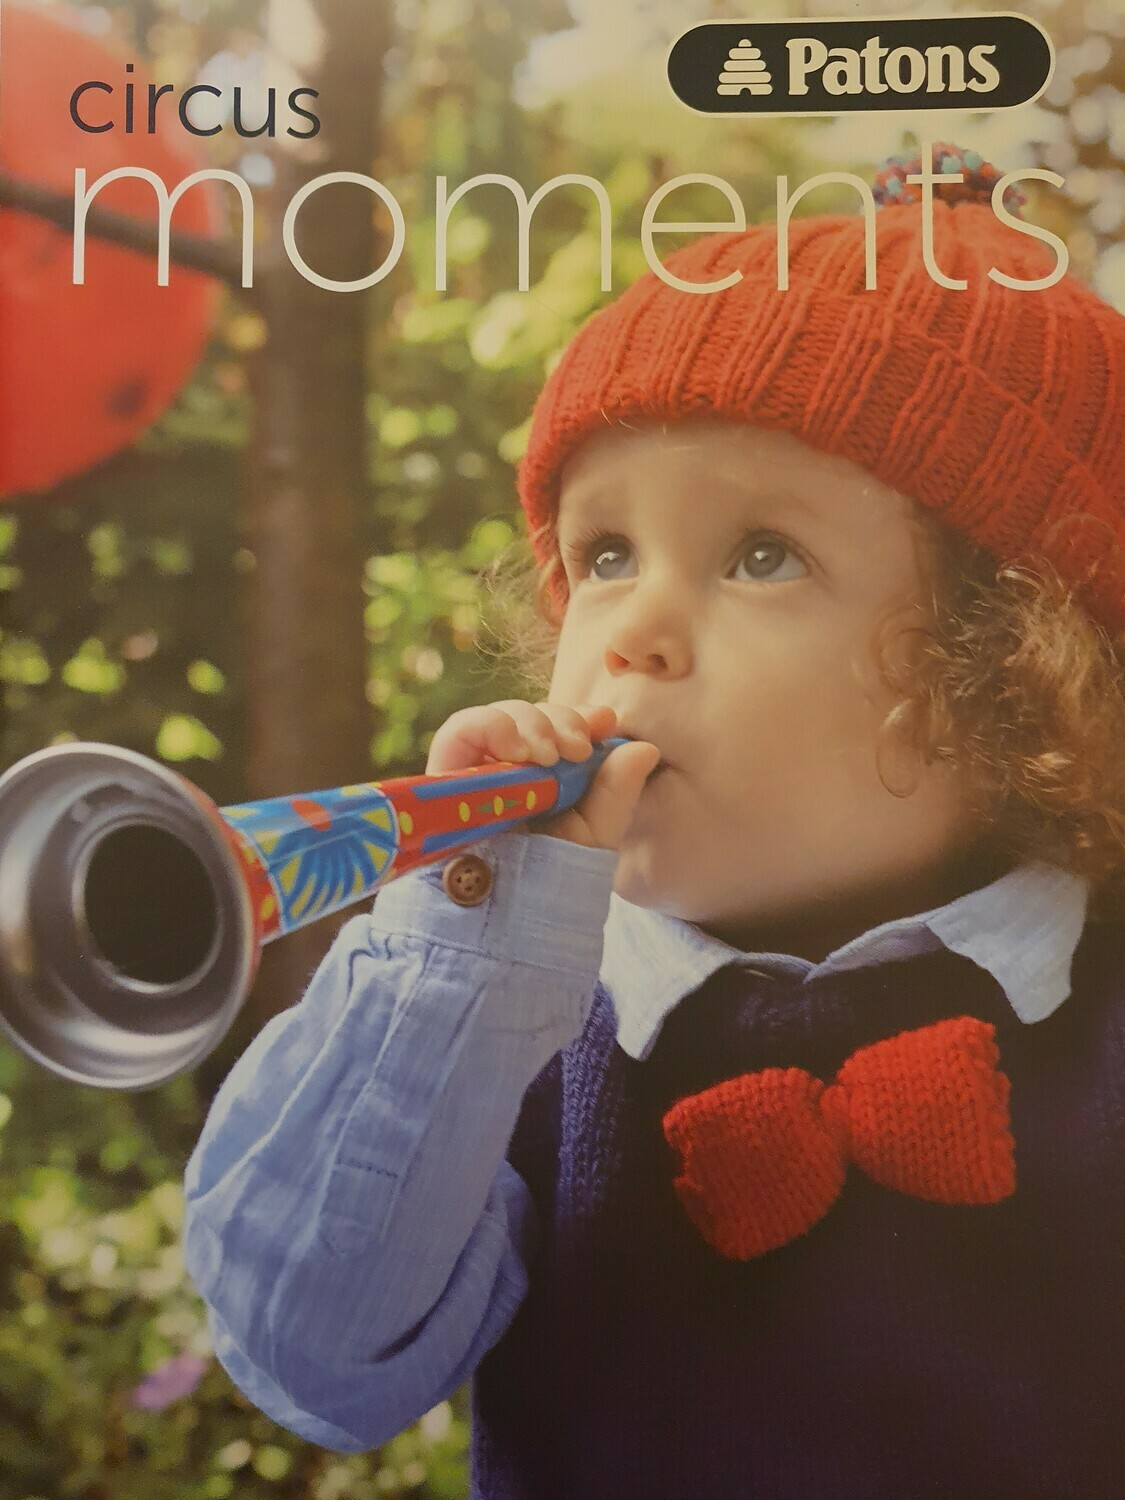 Circus Moments knitting book by Patons